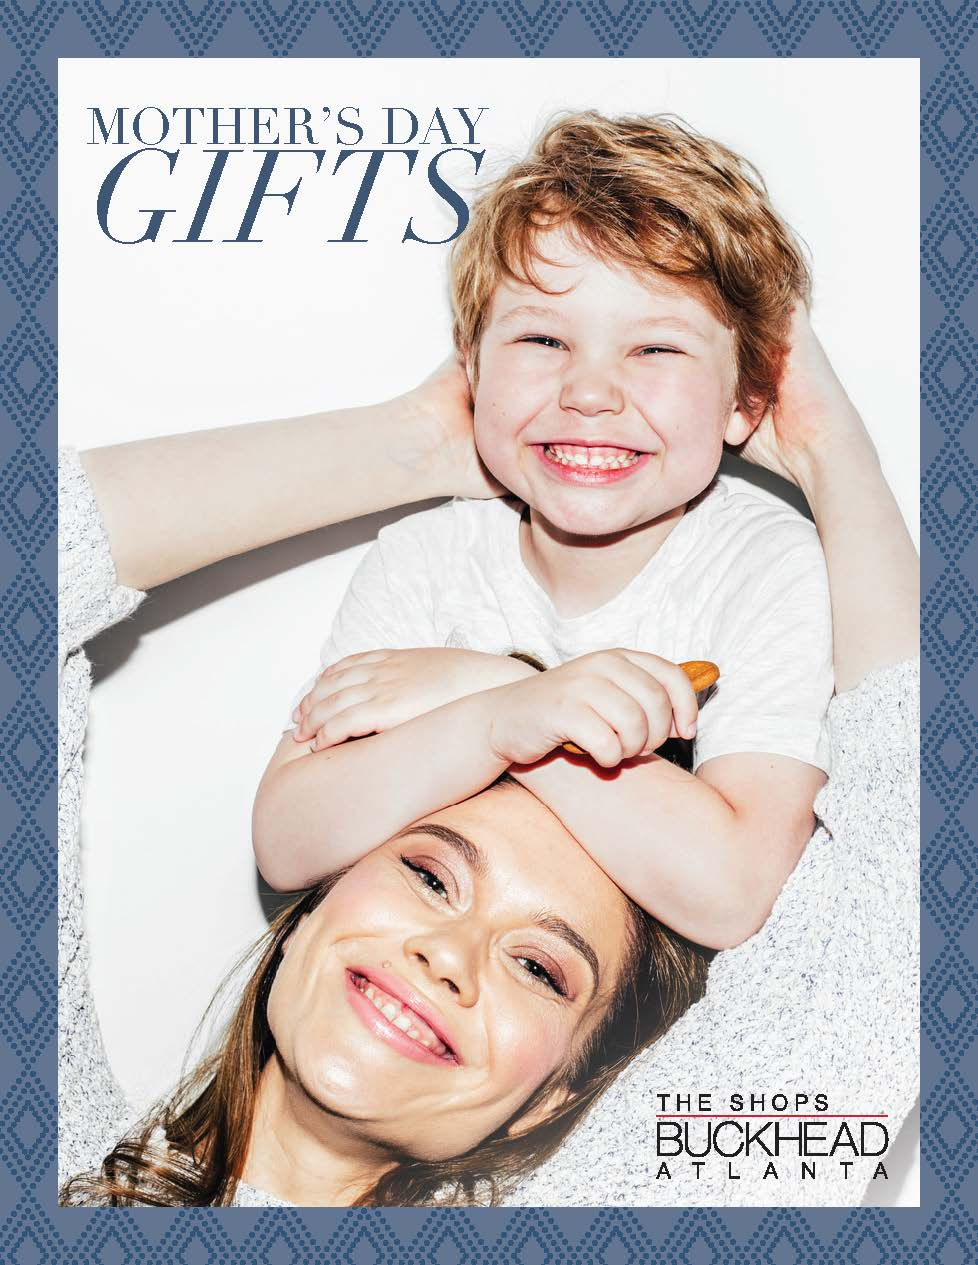 TSBA_Mother's Day Gift Guide_5-1_2_Page_1.jpg